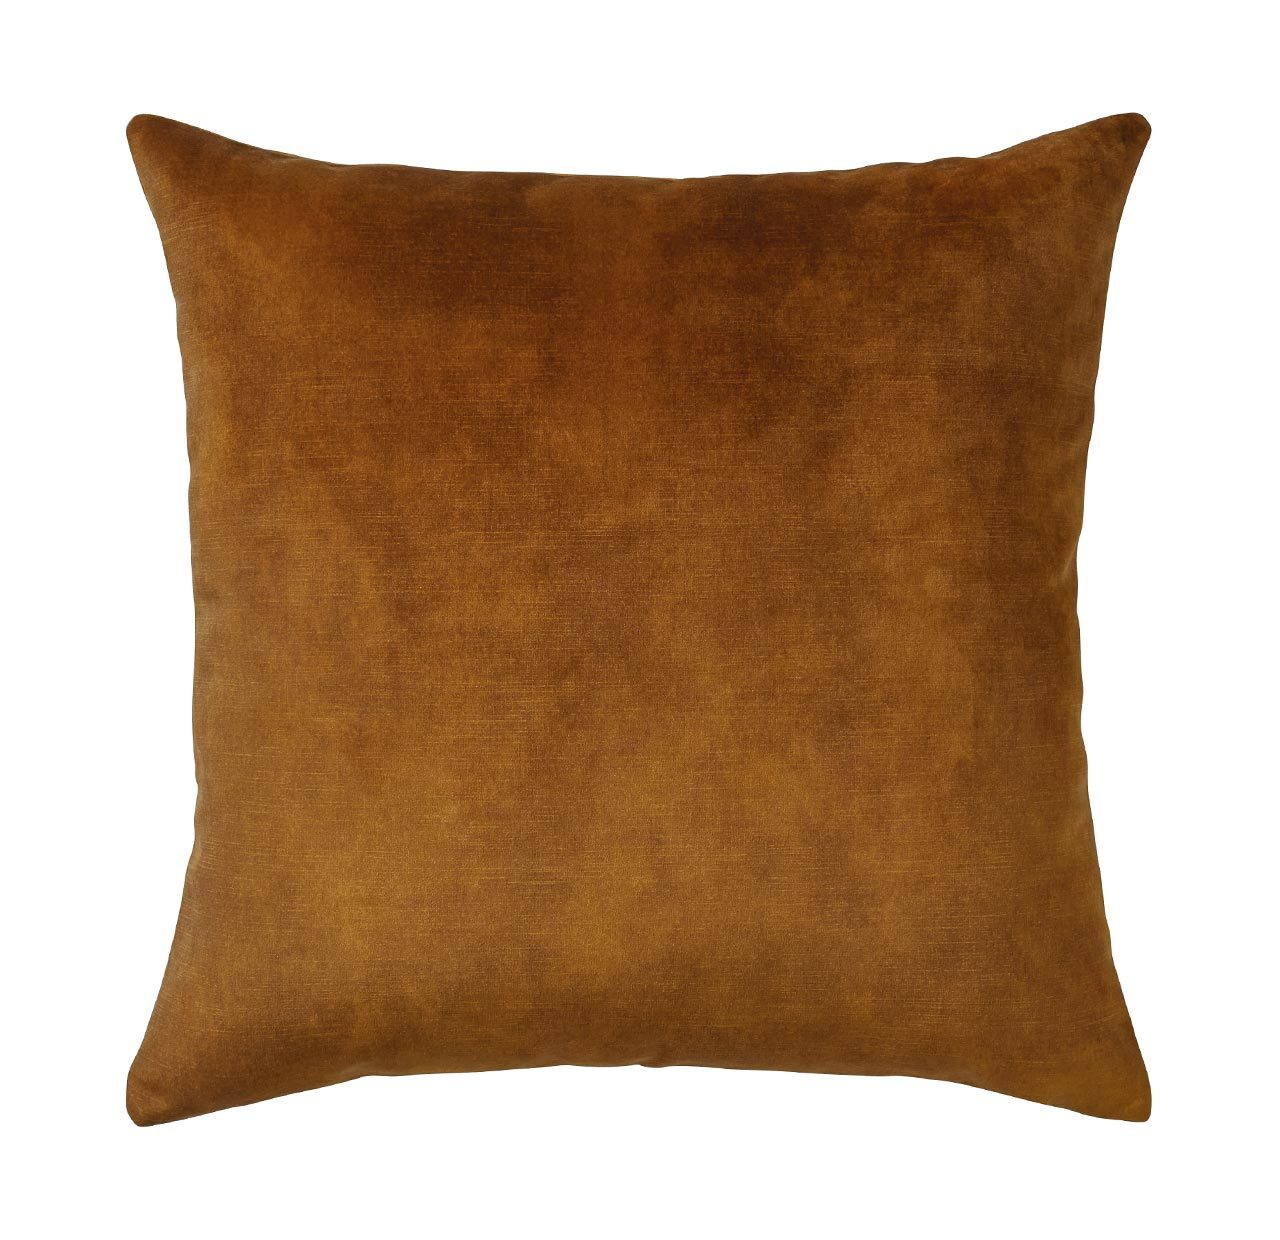 Lovely velvet cushion - Ochre